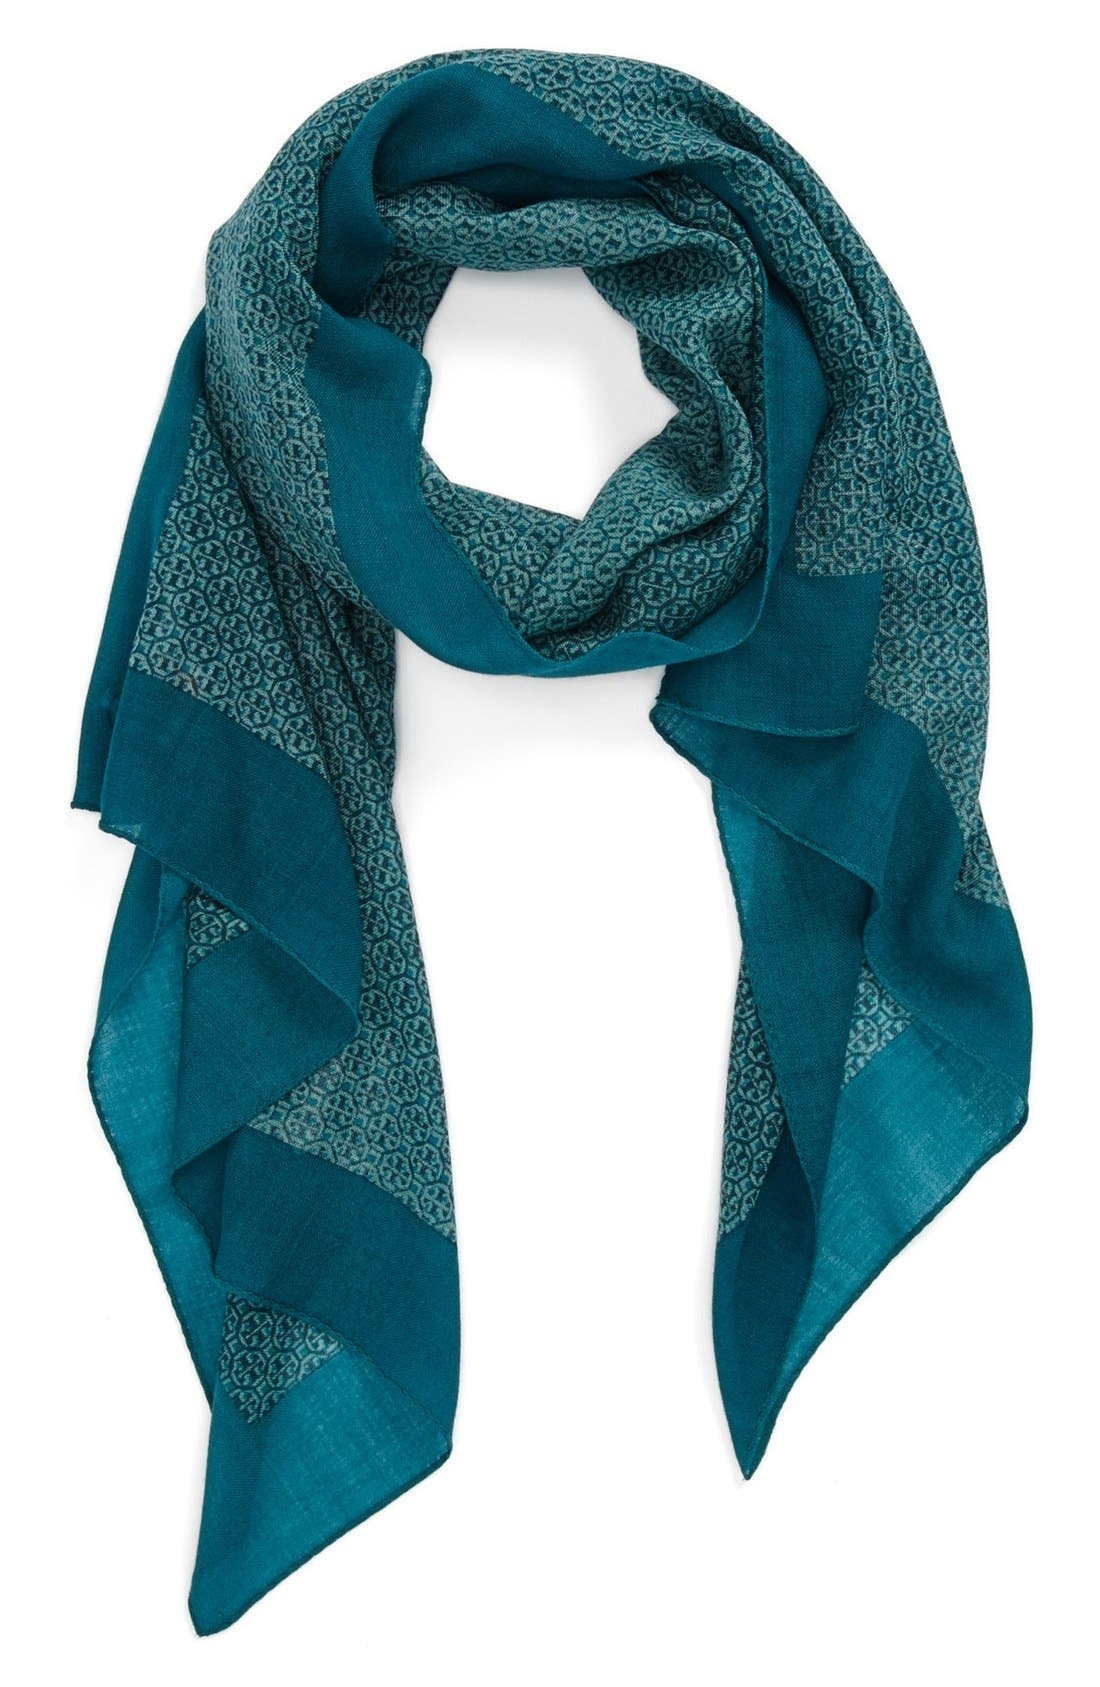 Main Image - Tory Burch 'Logo Lattice' Wool Scarf